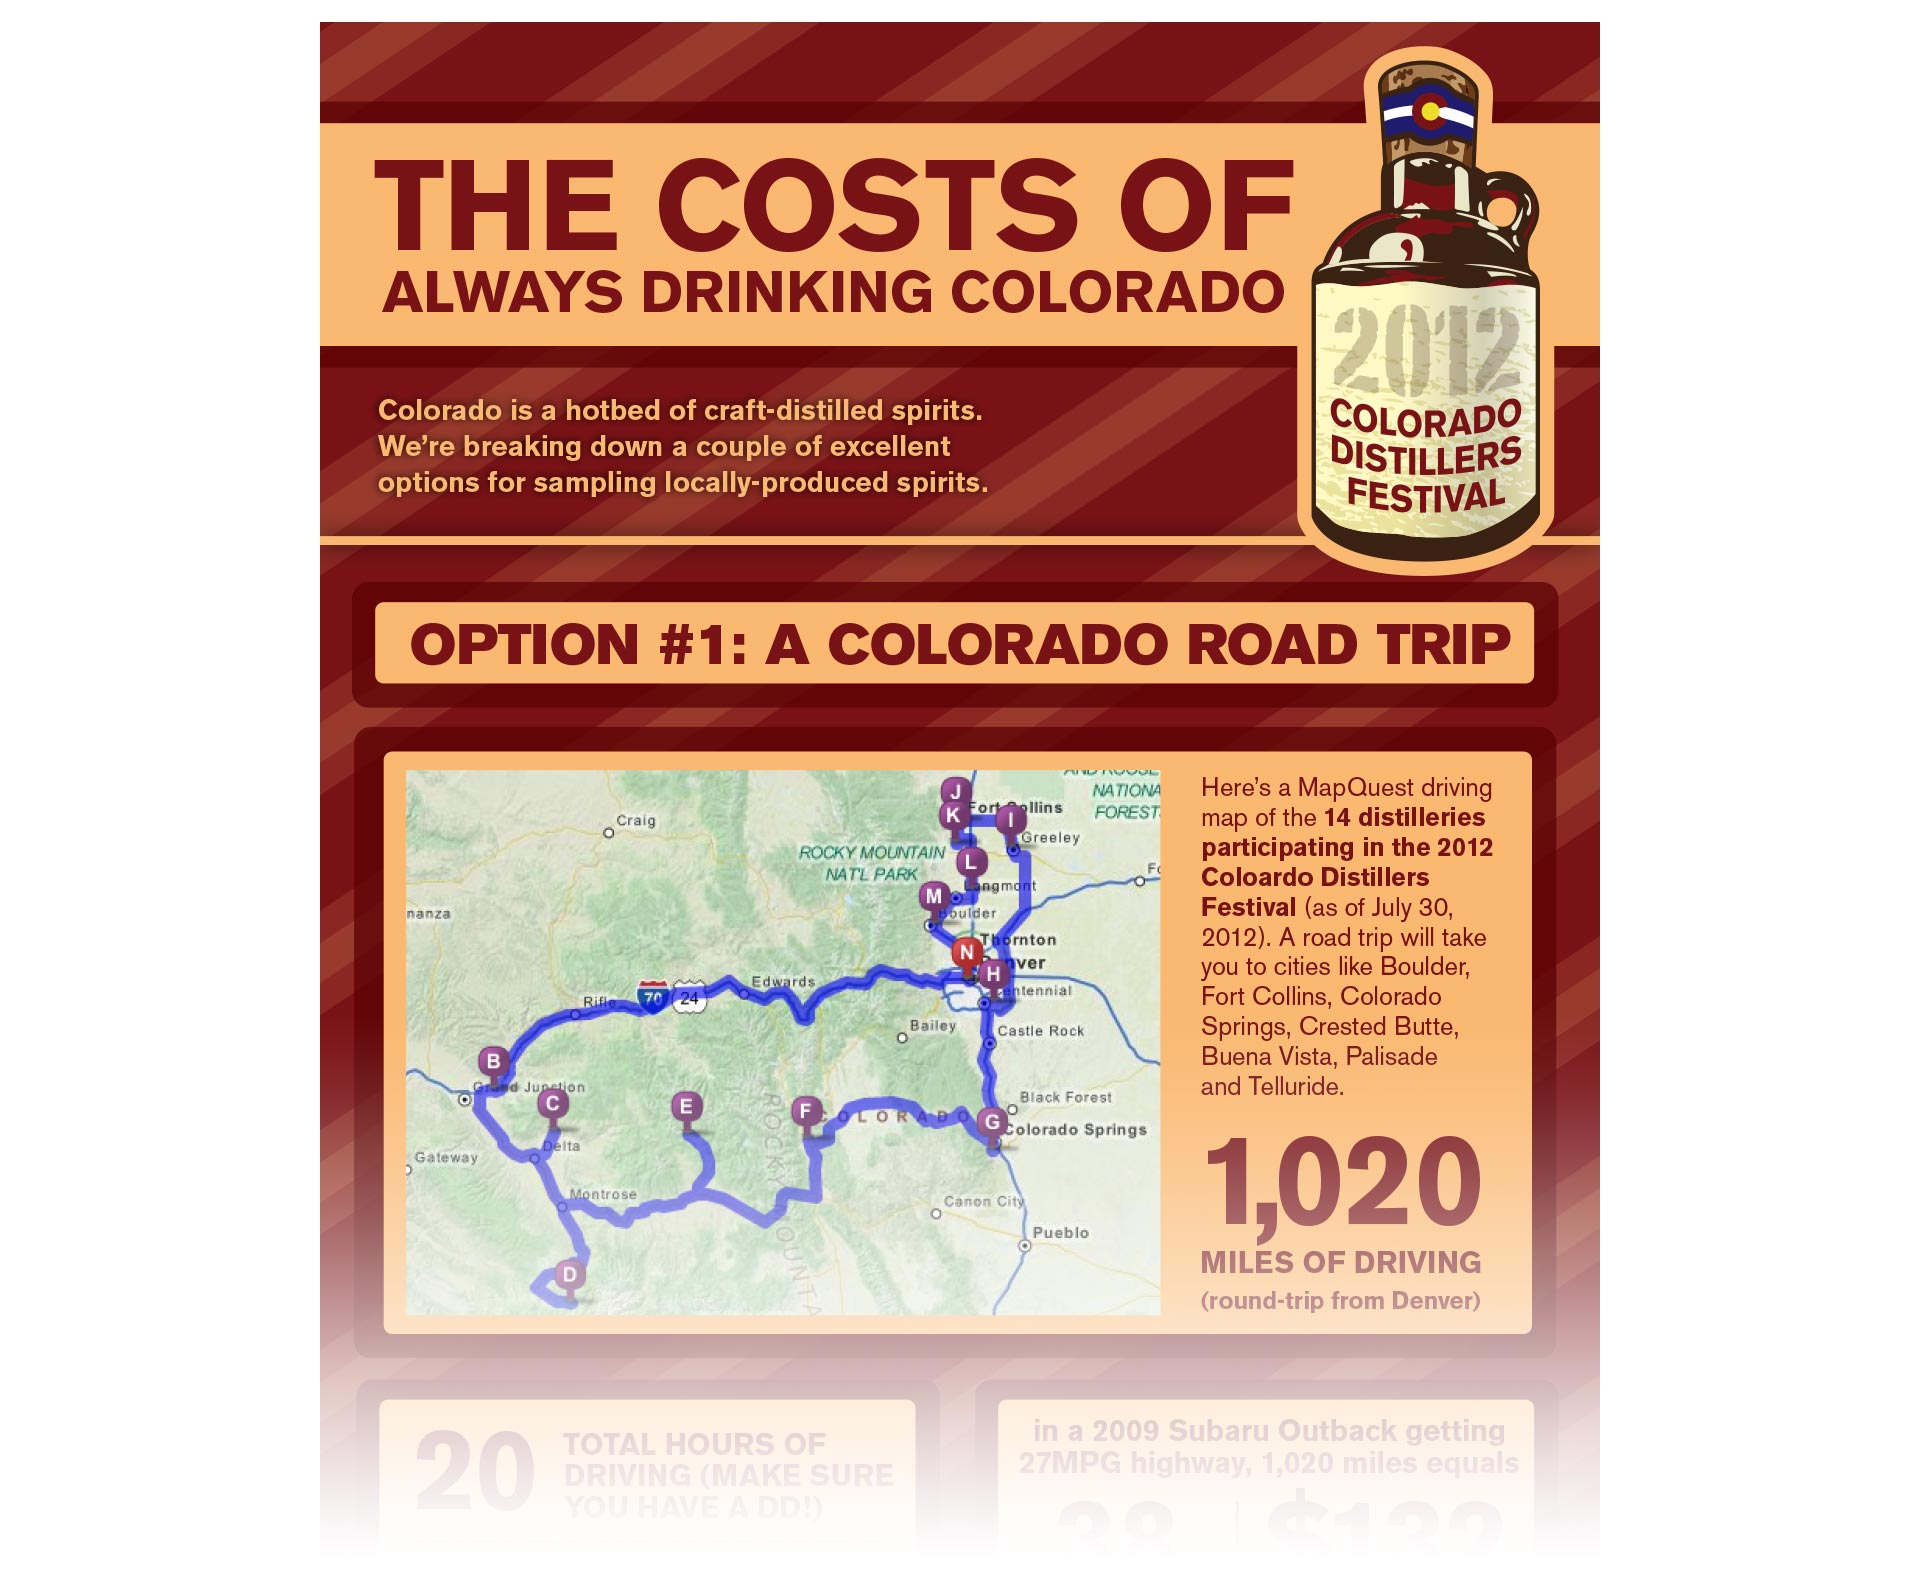 Colorado Distillers Festival Infographic